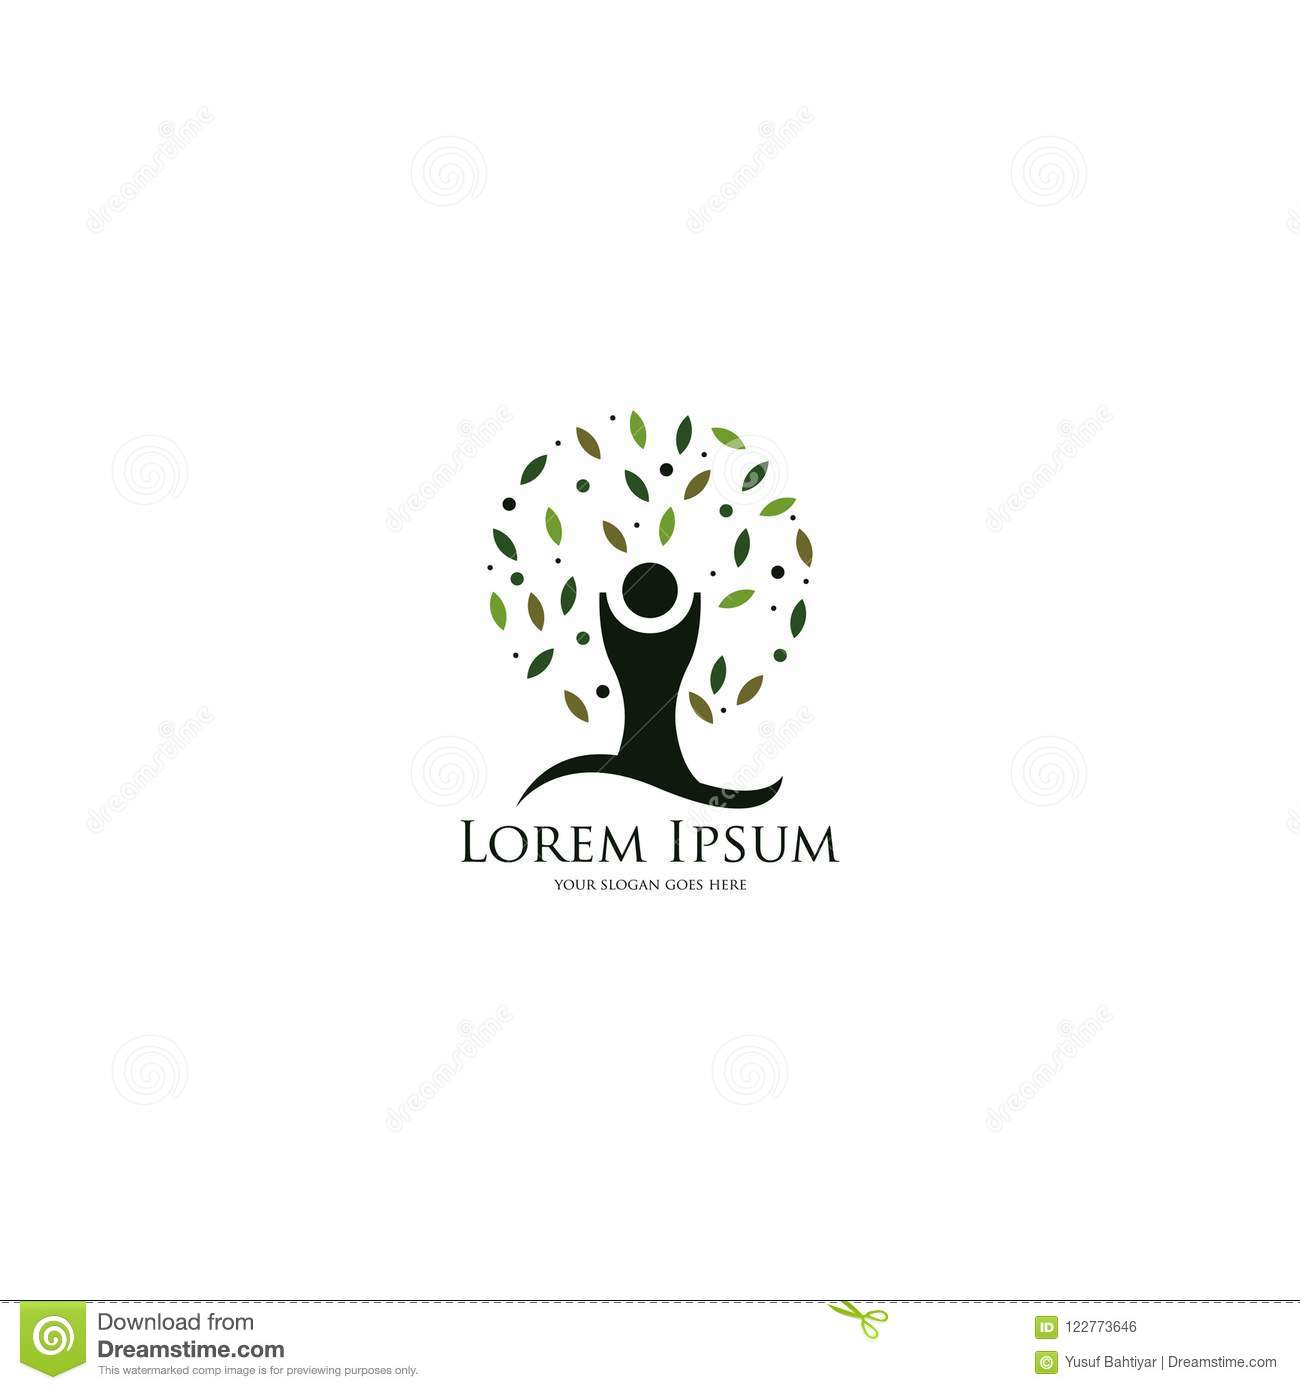 Tree logo template logo template for your business stock tree logo template logo template for your business friedricerecipe Choice Image